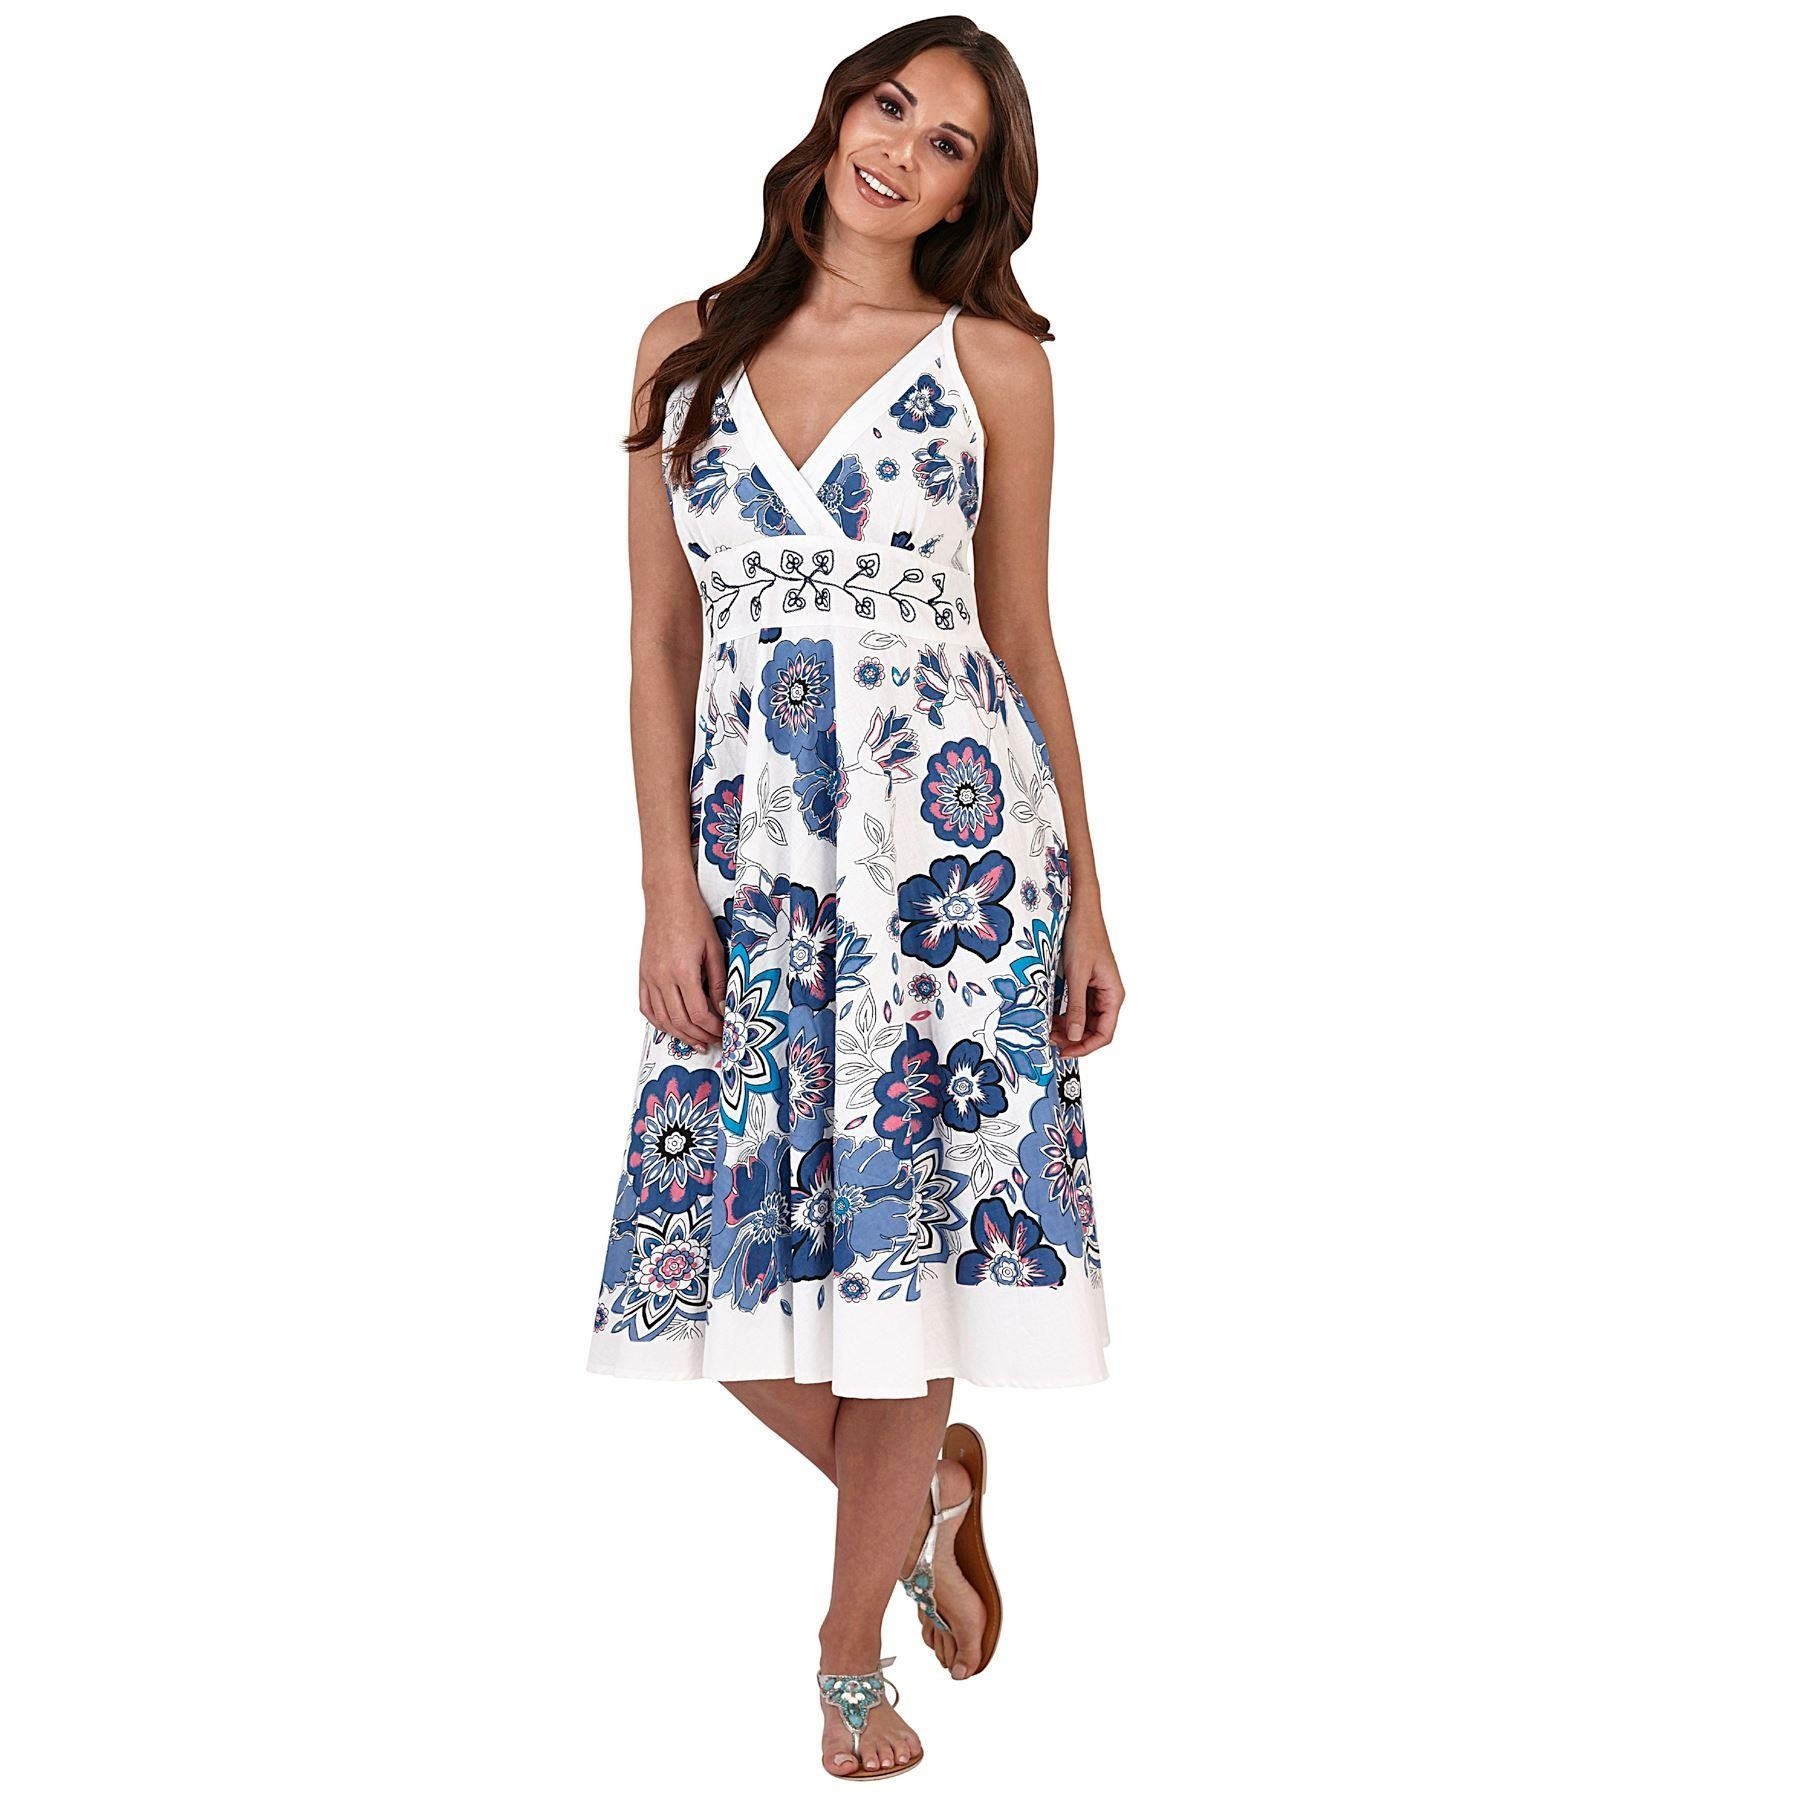 Pistachio Embroidered Crossover Dress - Blue